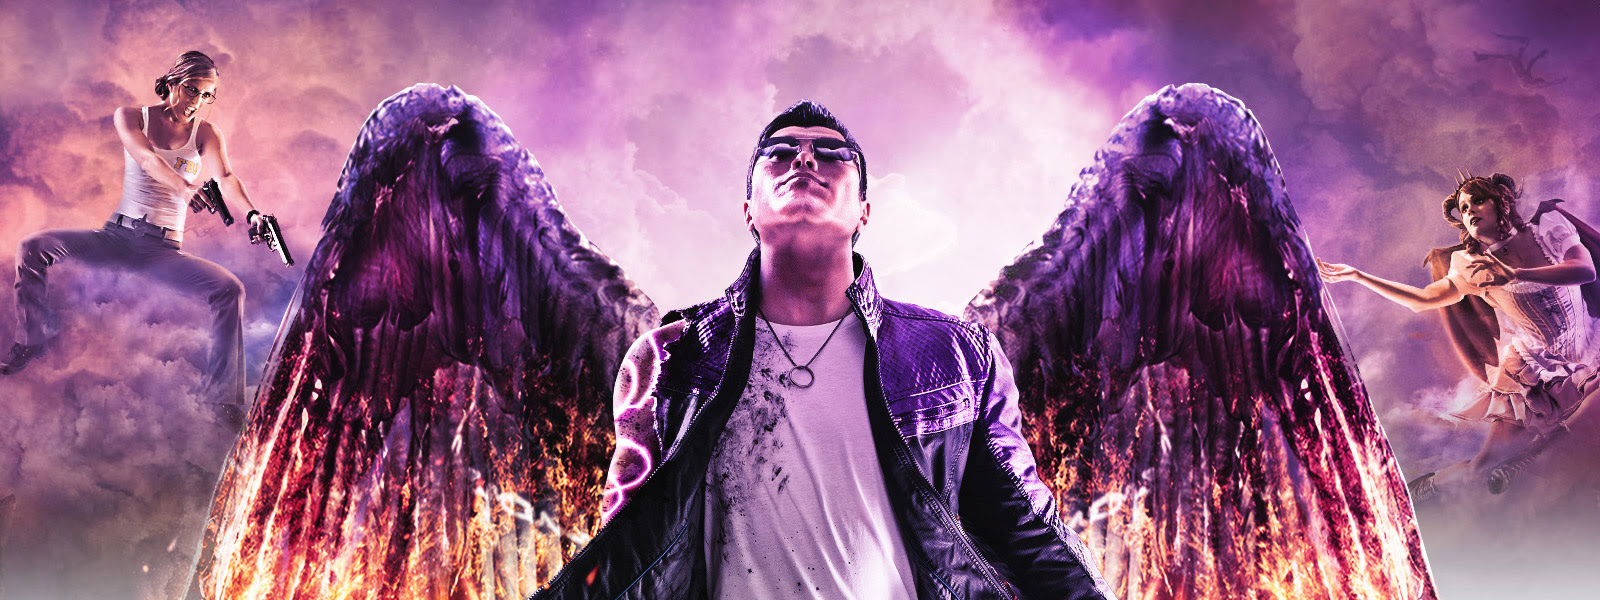 Saints Row Iv Gat Out Of Hell Review Ign